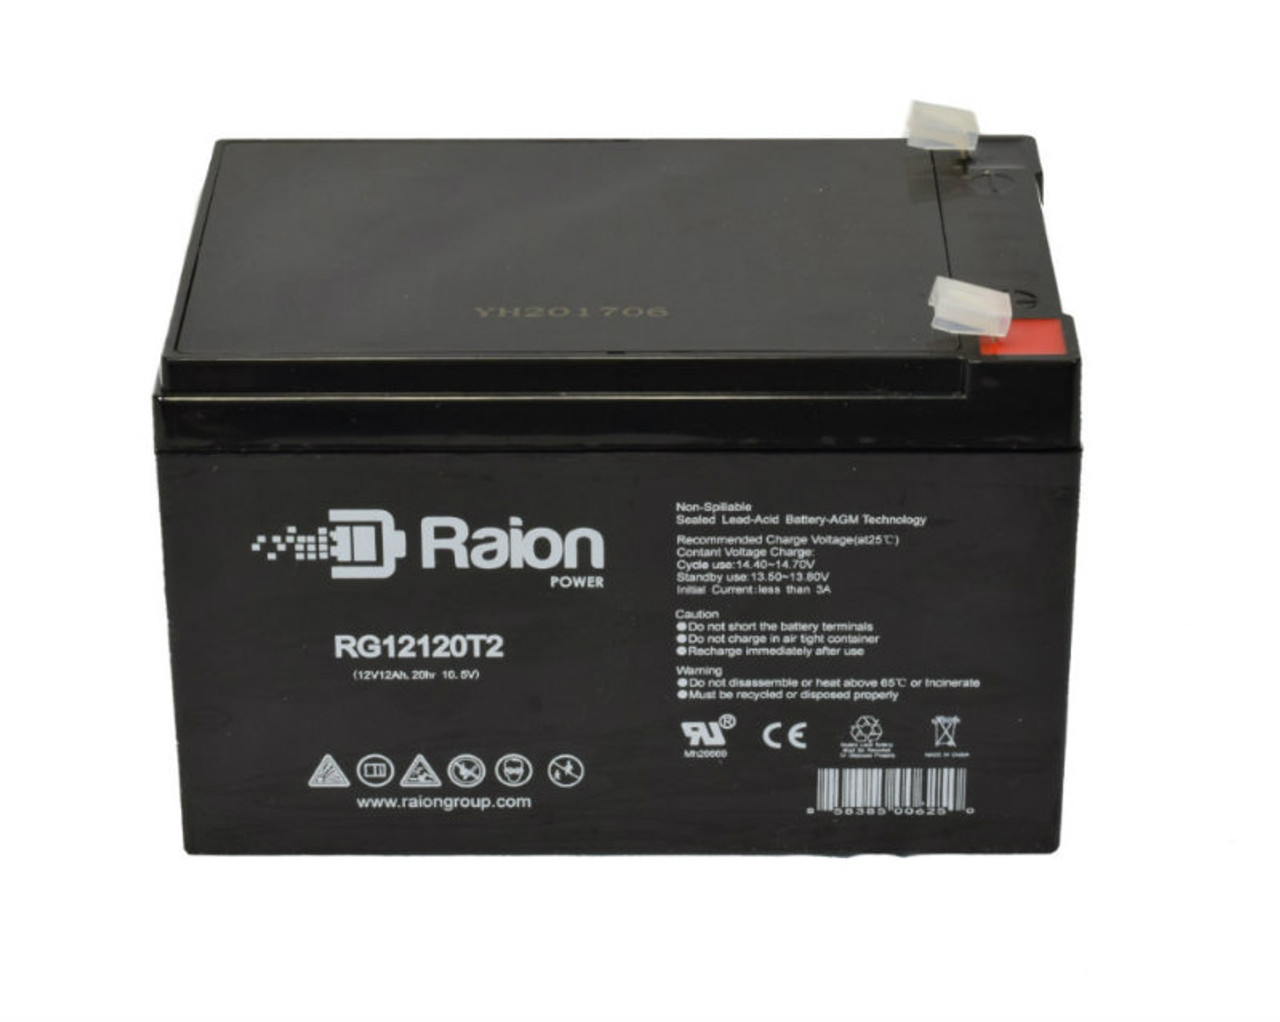 Raion Power RG12120T2 SLA Battery for Ademco 25360 Fire Alarm Control Panel